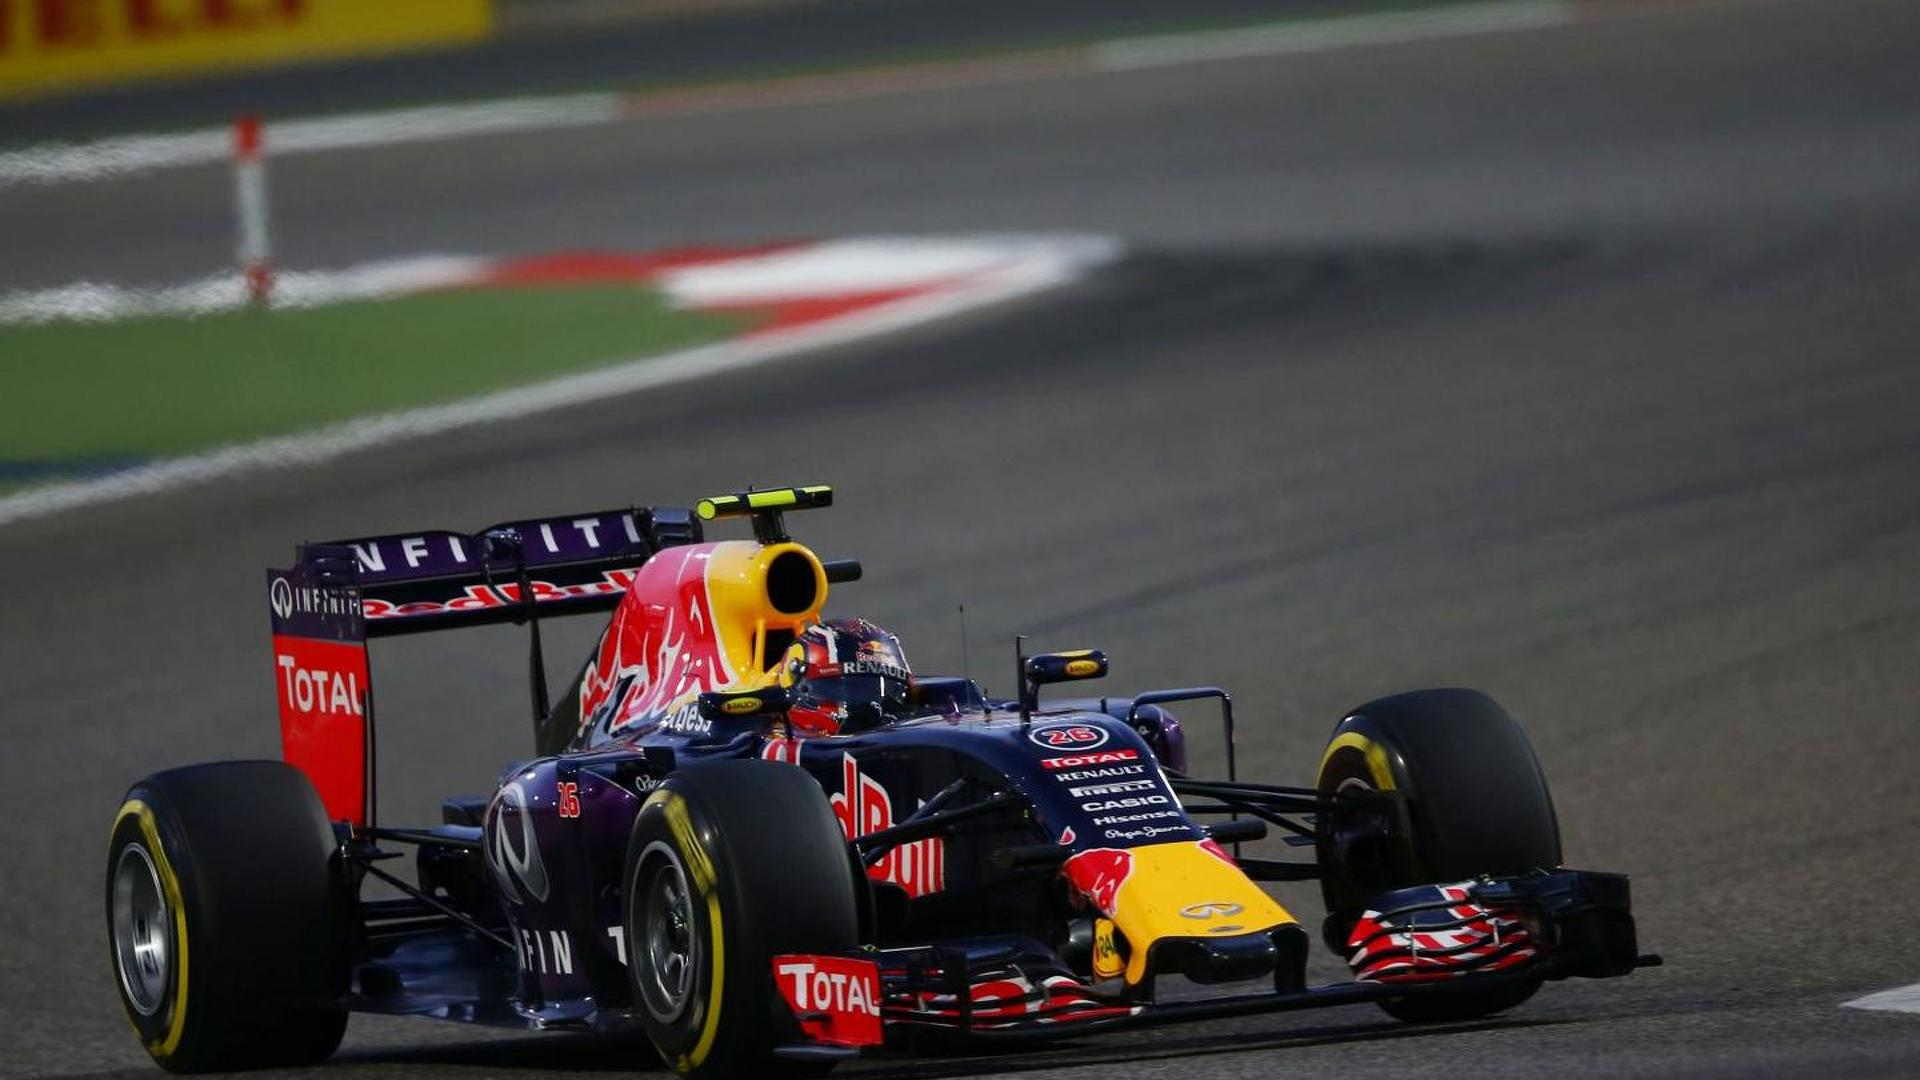 Second chance likely for struggling Kvyat